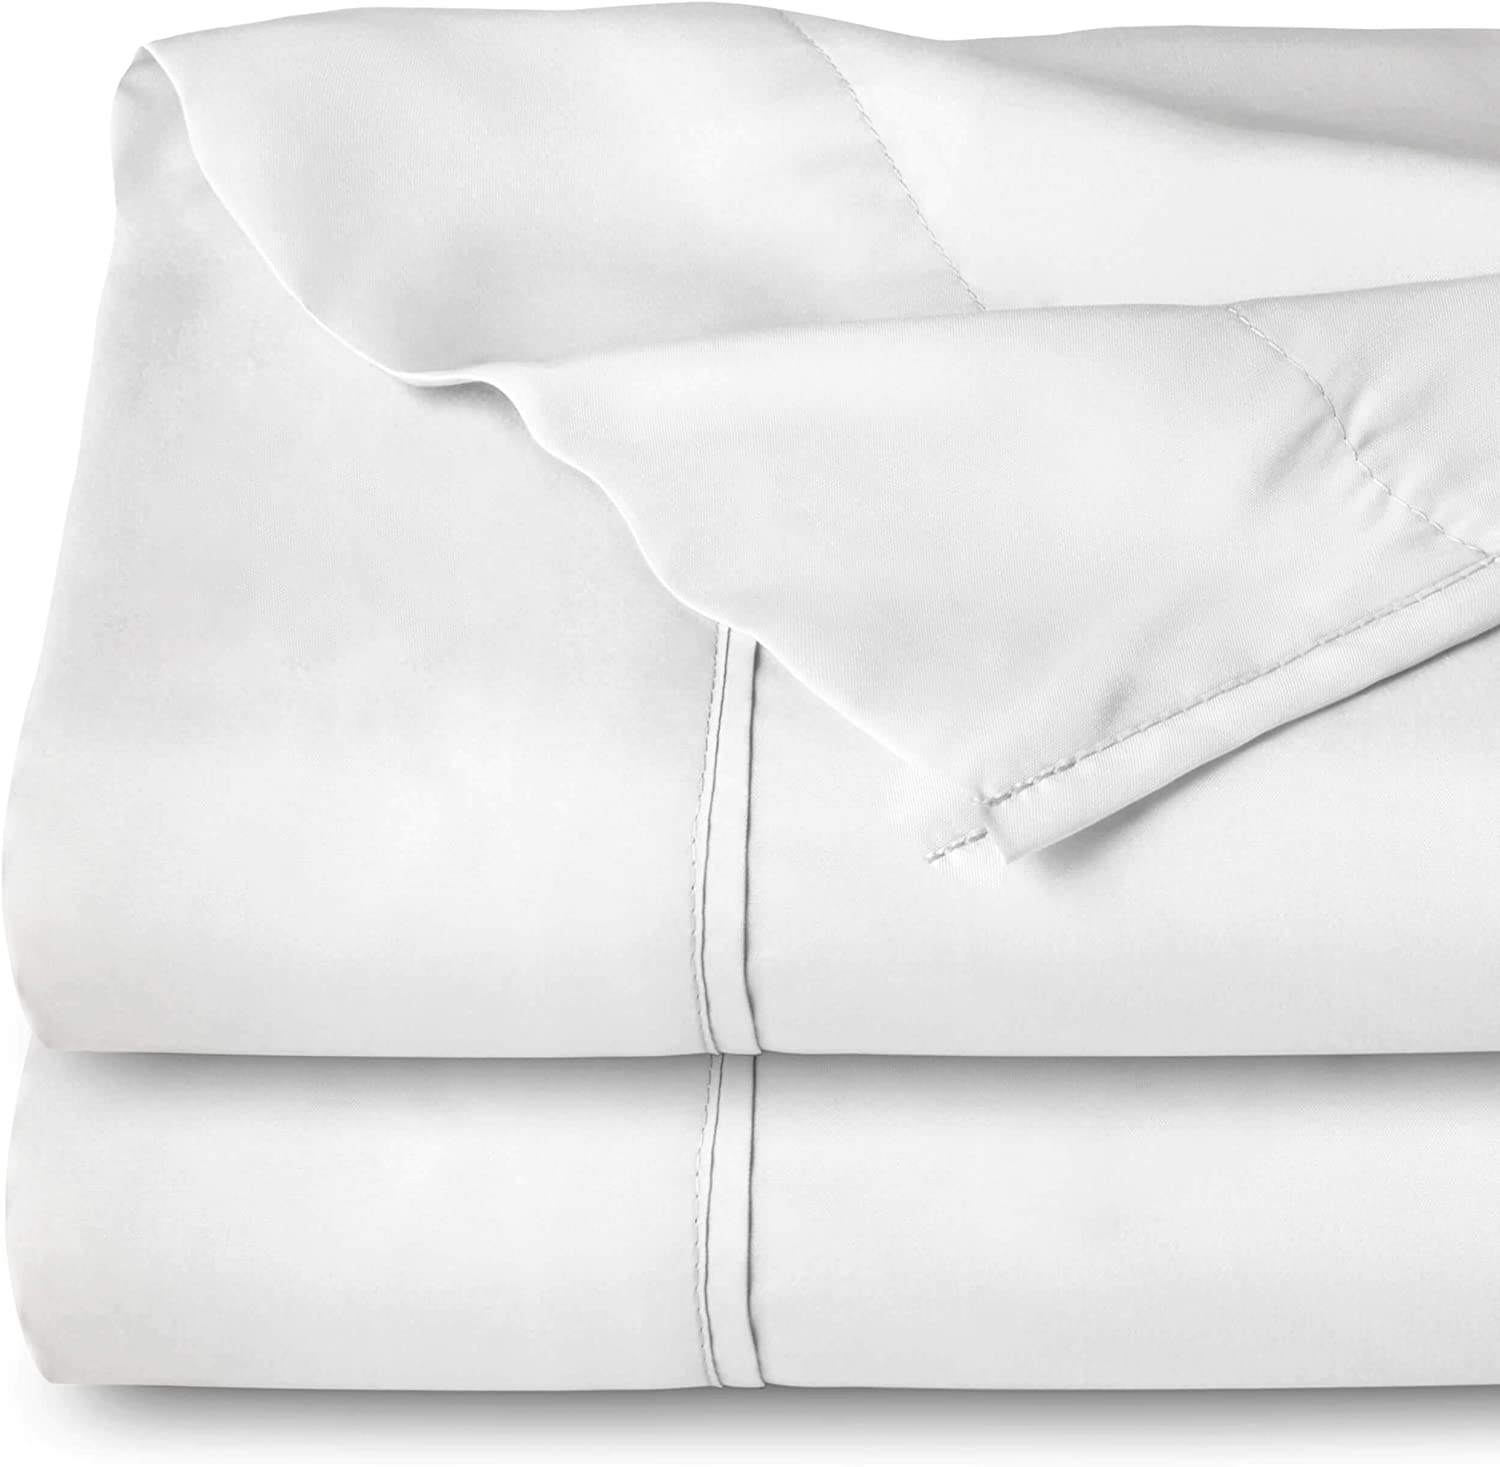 Bare Home Kids Flat Top Sheet Premium 1800 Ultra-Soft Microfiber Collection - Double Brushed, Hypoallergenic, Wrinkle Resistant, Easy Care (Twin/Twin Extra-Long - 2 Pack, White)